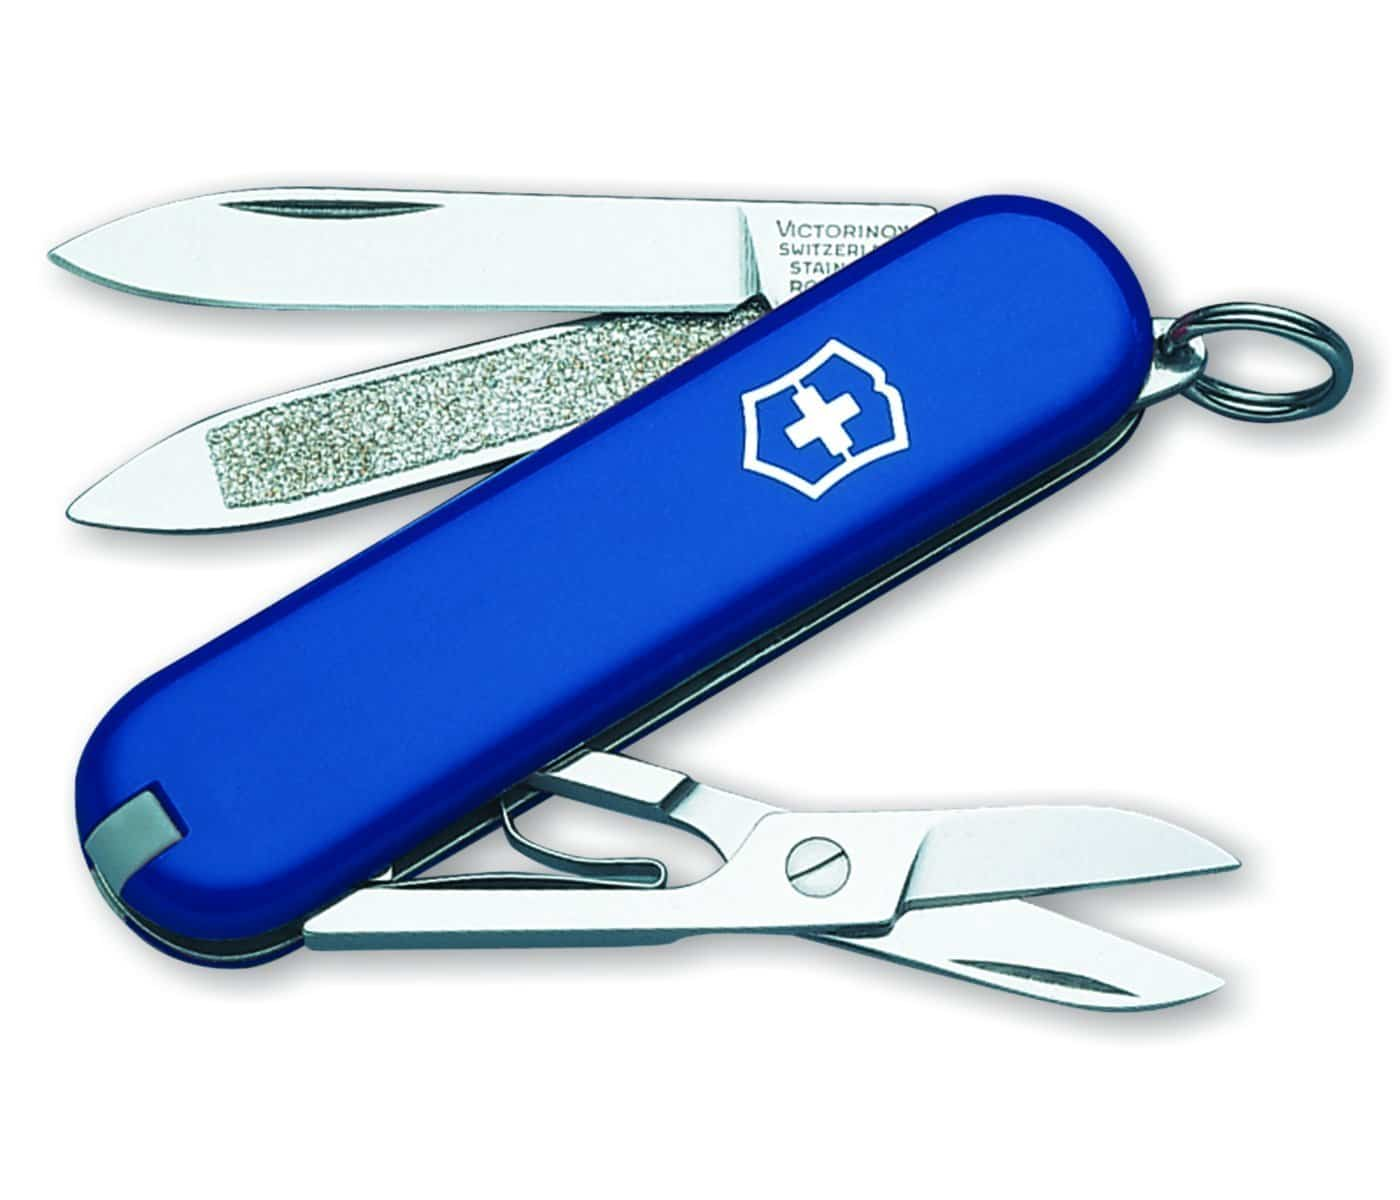 swiss army knife for self defense